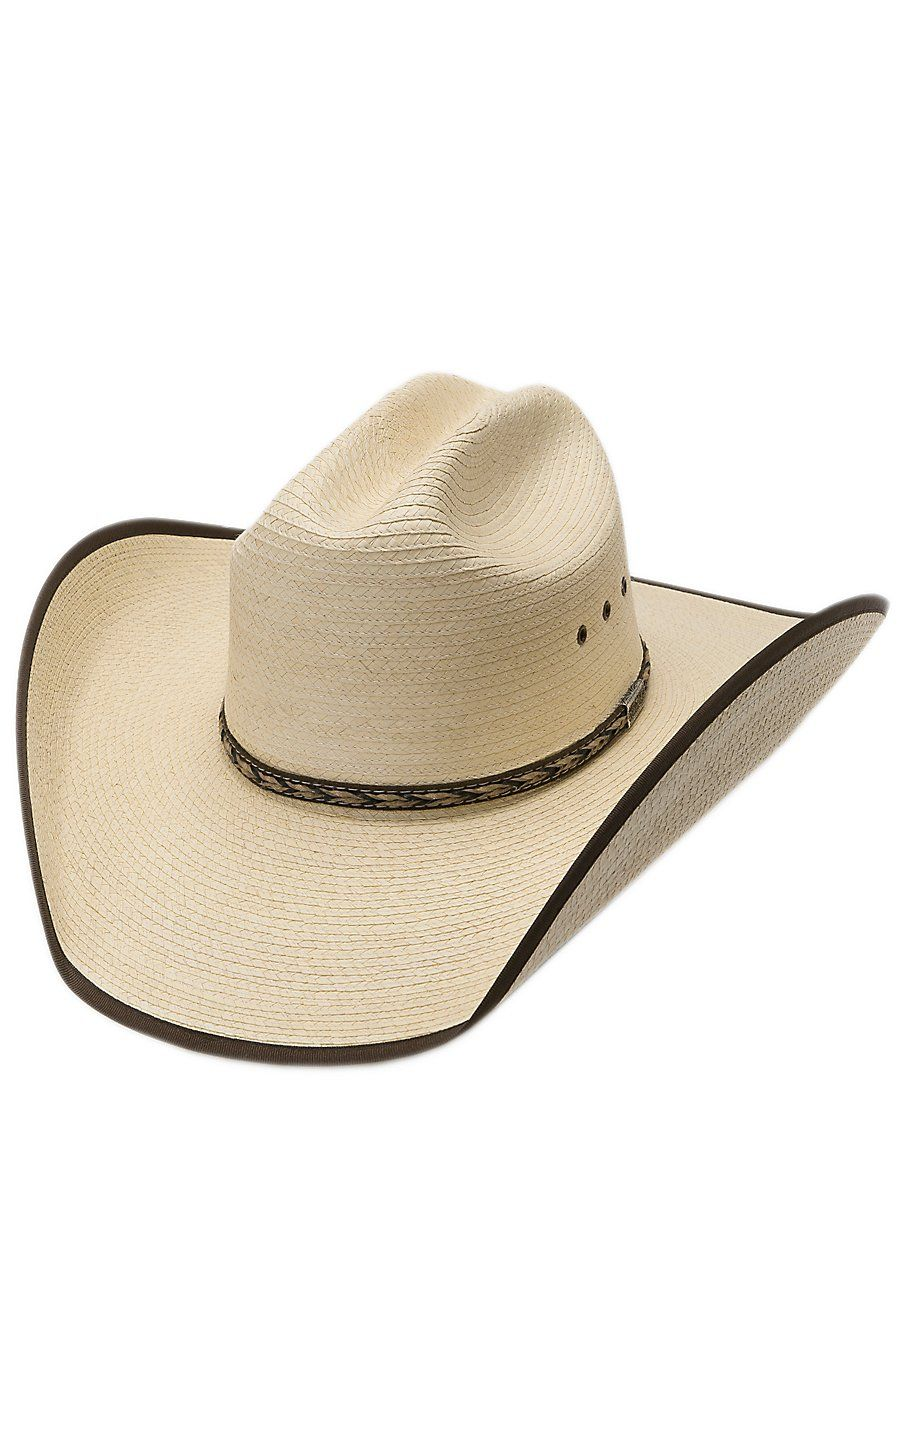 da91ba92cd0c7 Larry Mahan Range Natural Palm with Bound Edge Cowboy Hat Mens Western  Hats